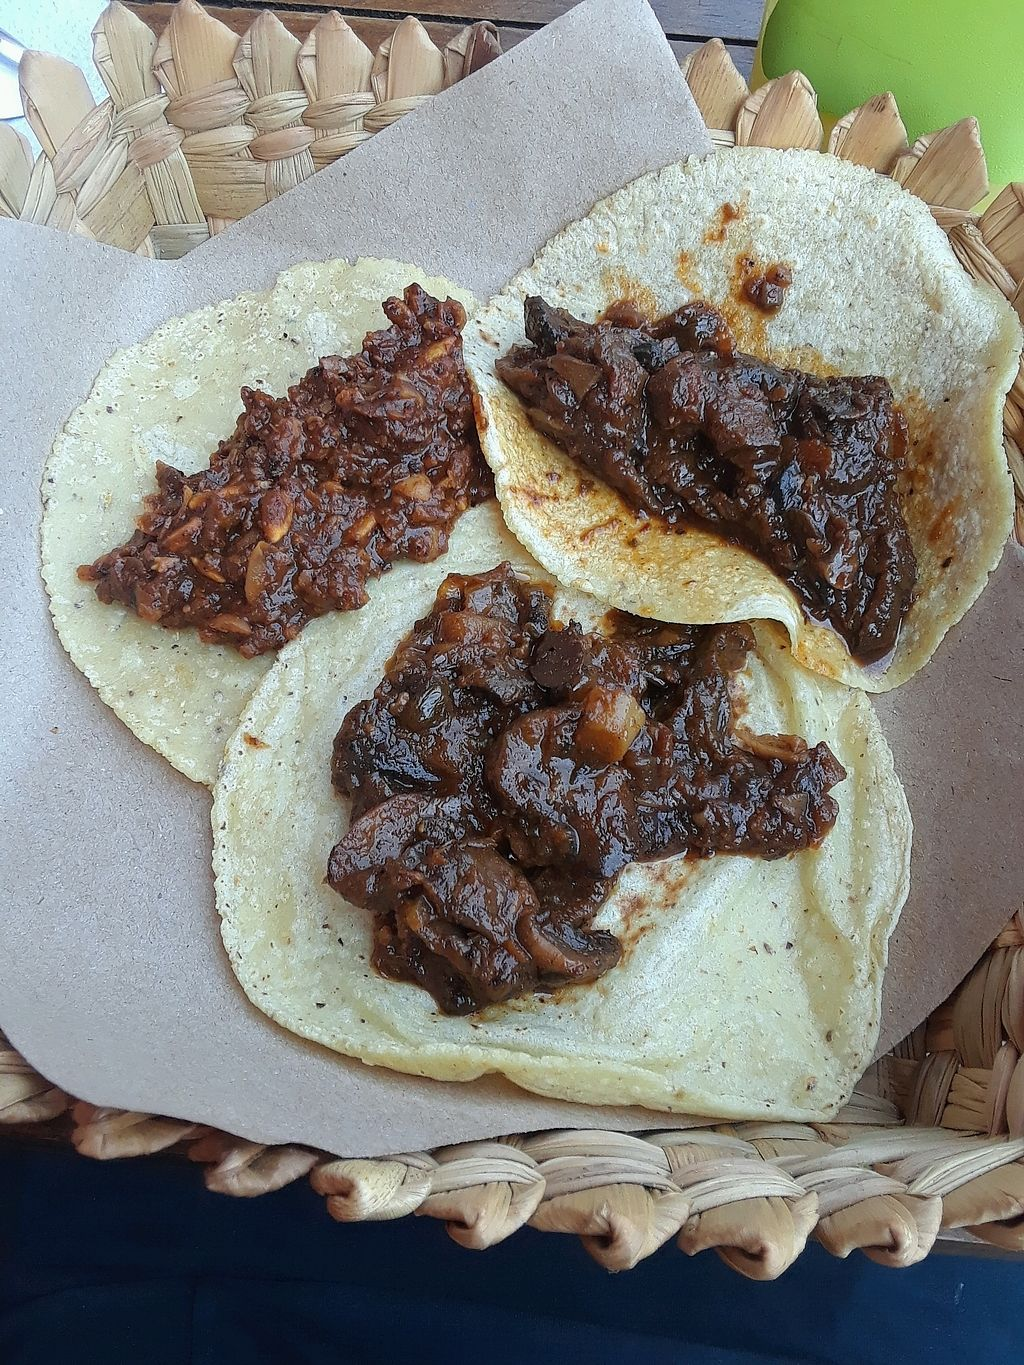 """Photo of Taqueria Entre Zankas  by <a href=""""/members/profile/Yona"""">Yona</a> <br/>The tacos before the added extras <br/> November 22, 2017  - <a href='/contact/abuse/image/85588/327980'>Report</a>"""